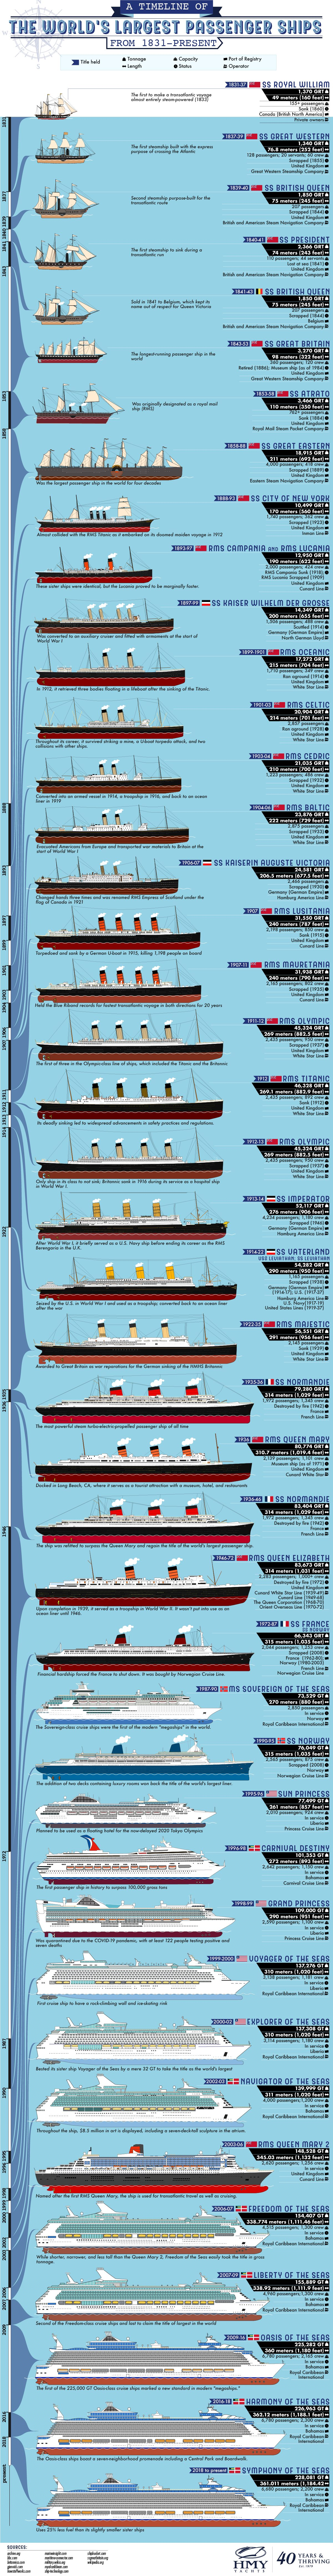 A Timeline of the World's Largest Passenger Ships From 1831-Present - HMY.com - Infographic